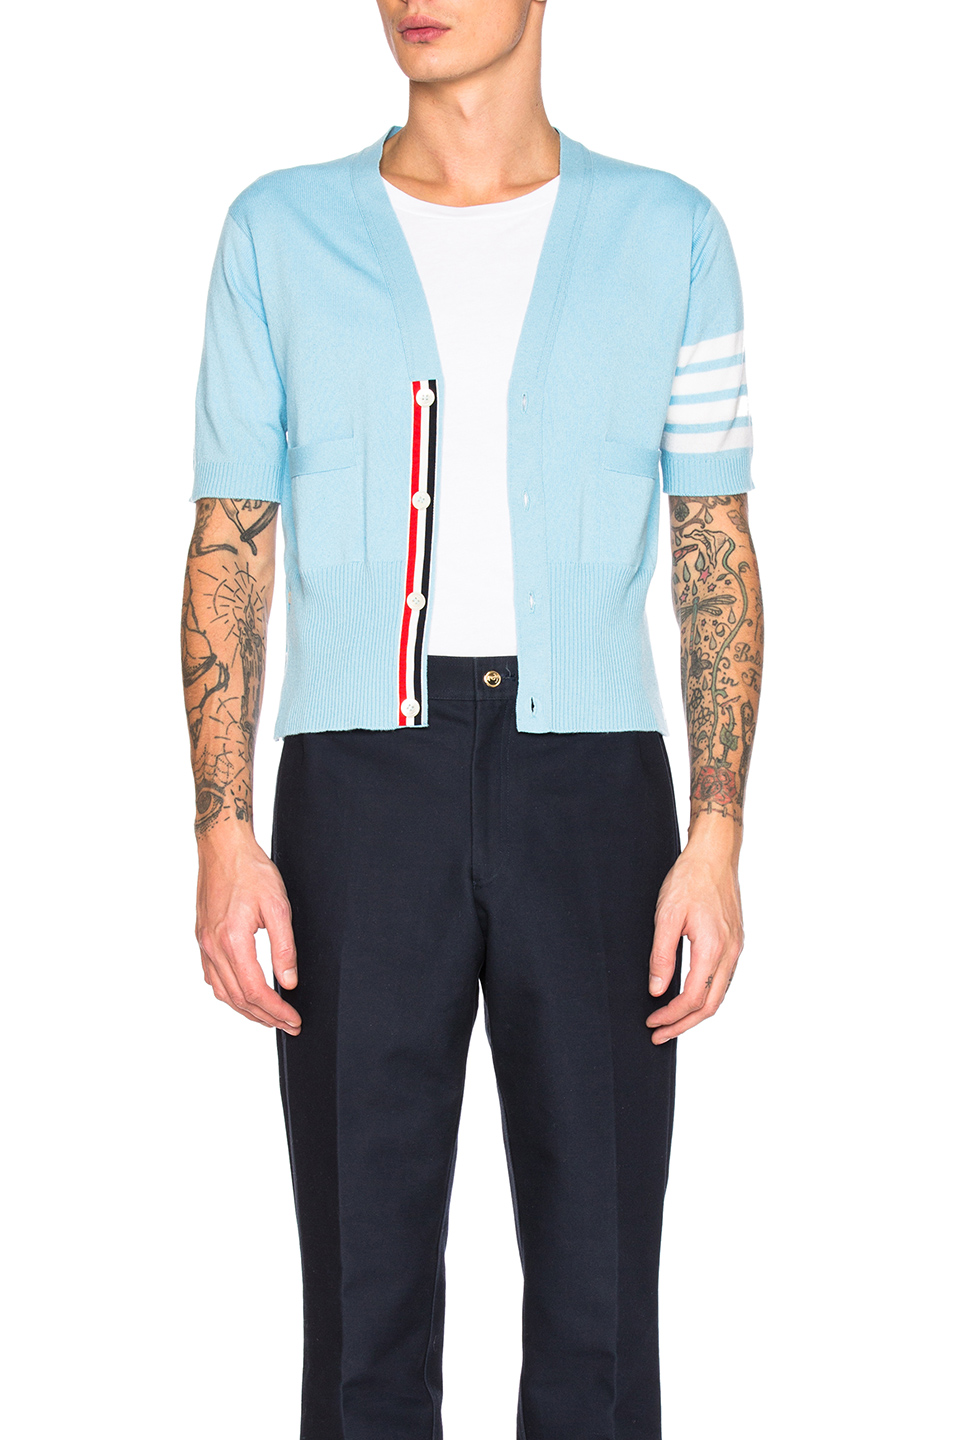 Thom Browne Cashmere Short Sleeve Cardigan in Blue